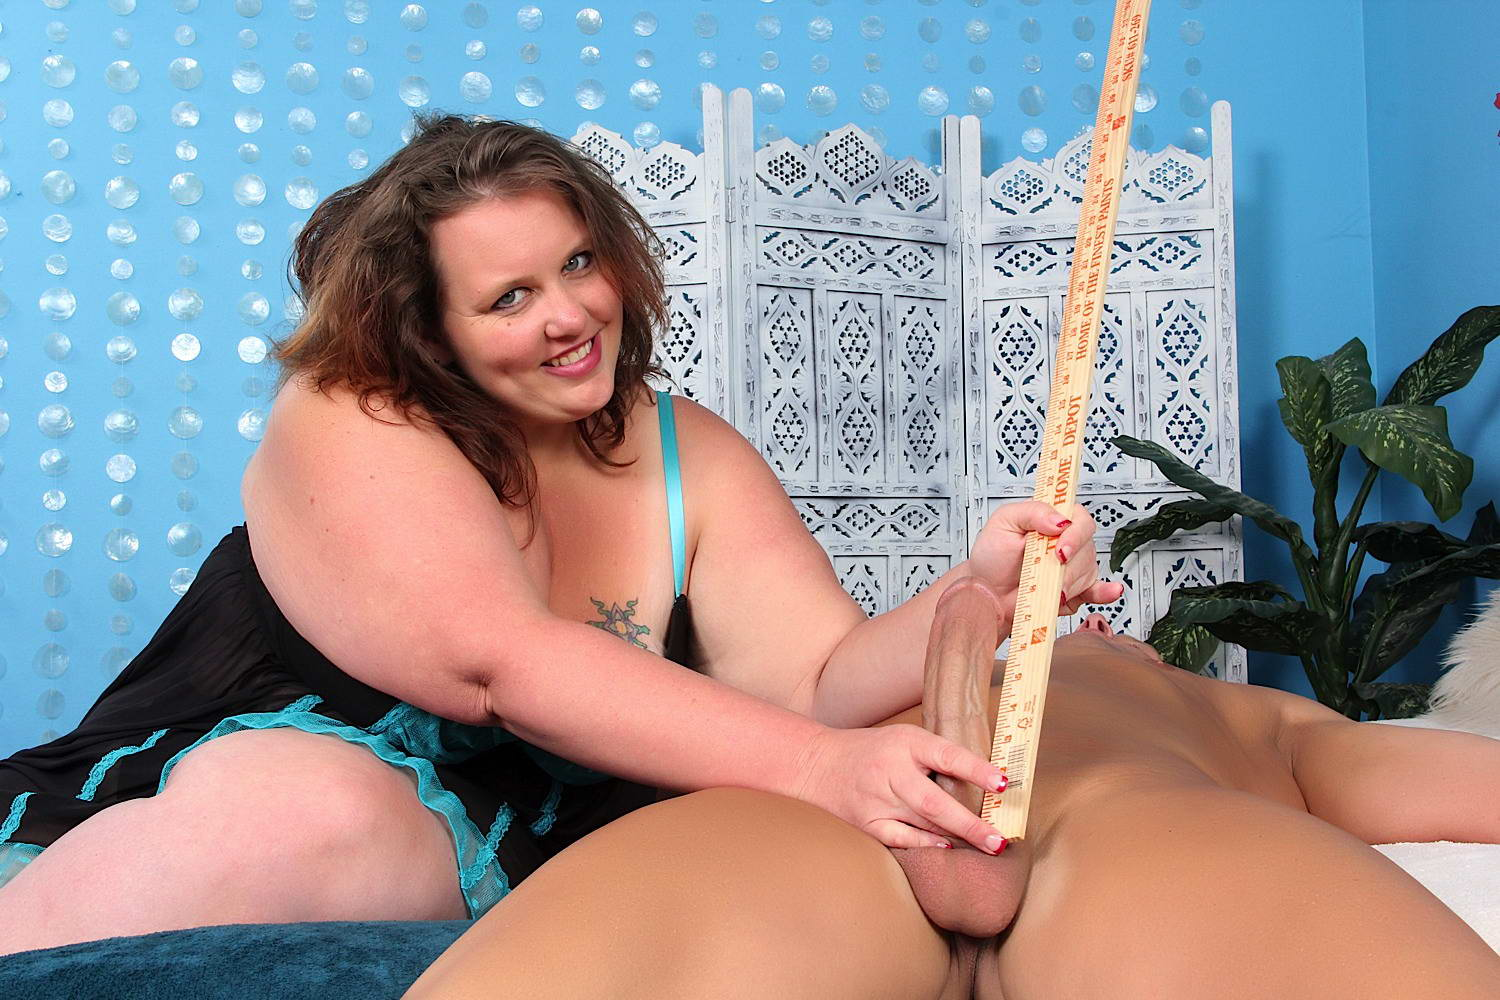 image Bbw samantha 38g drills her pussy with dildo till she squirt